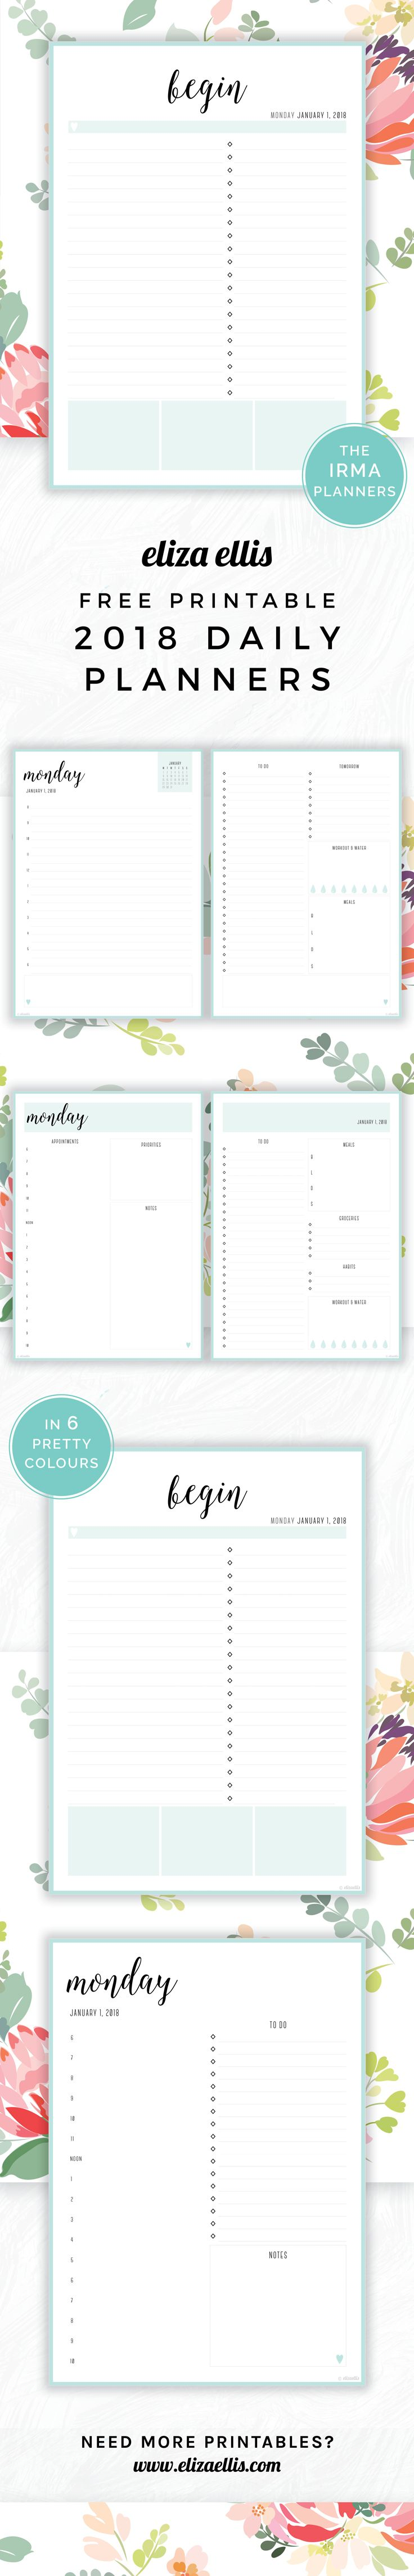 printable daily planner for college students